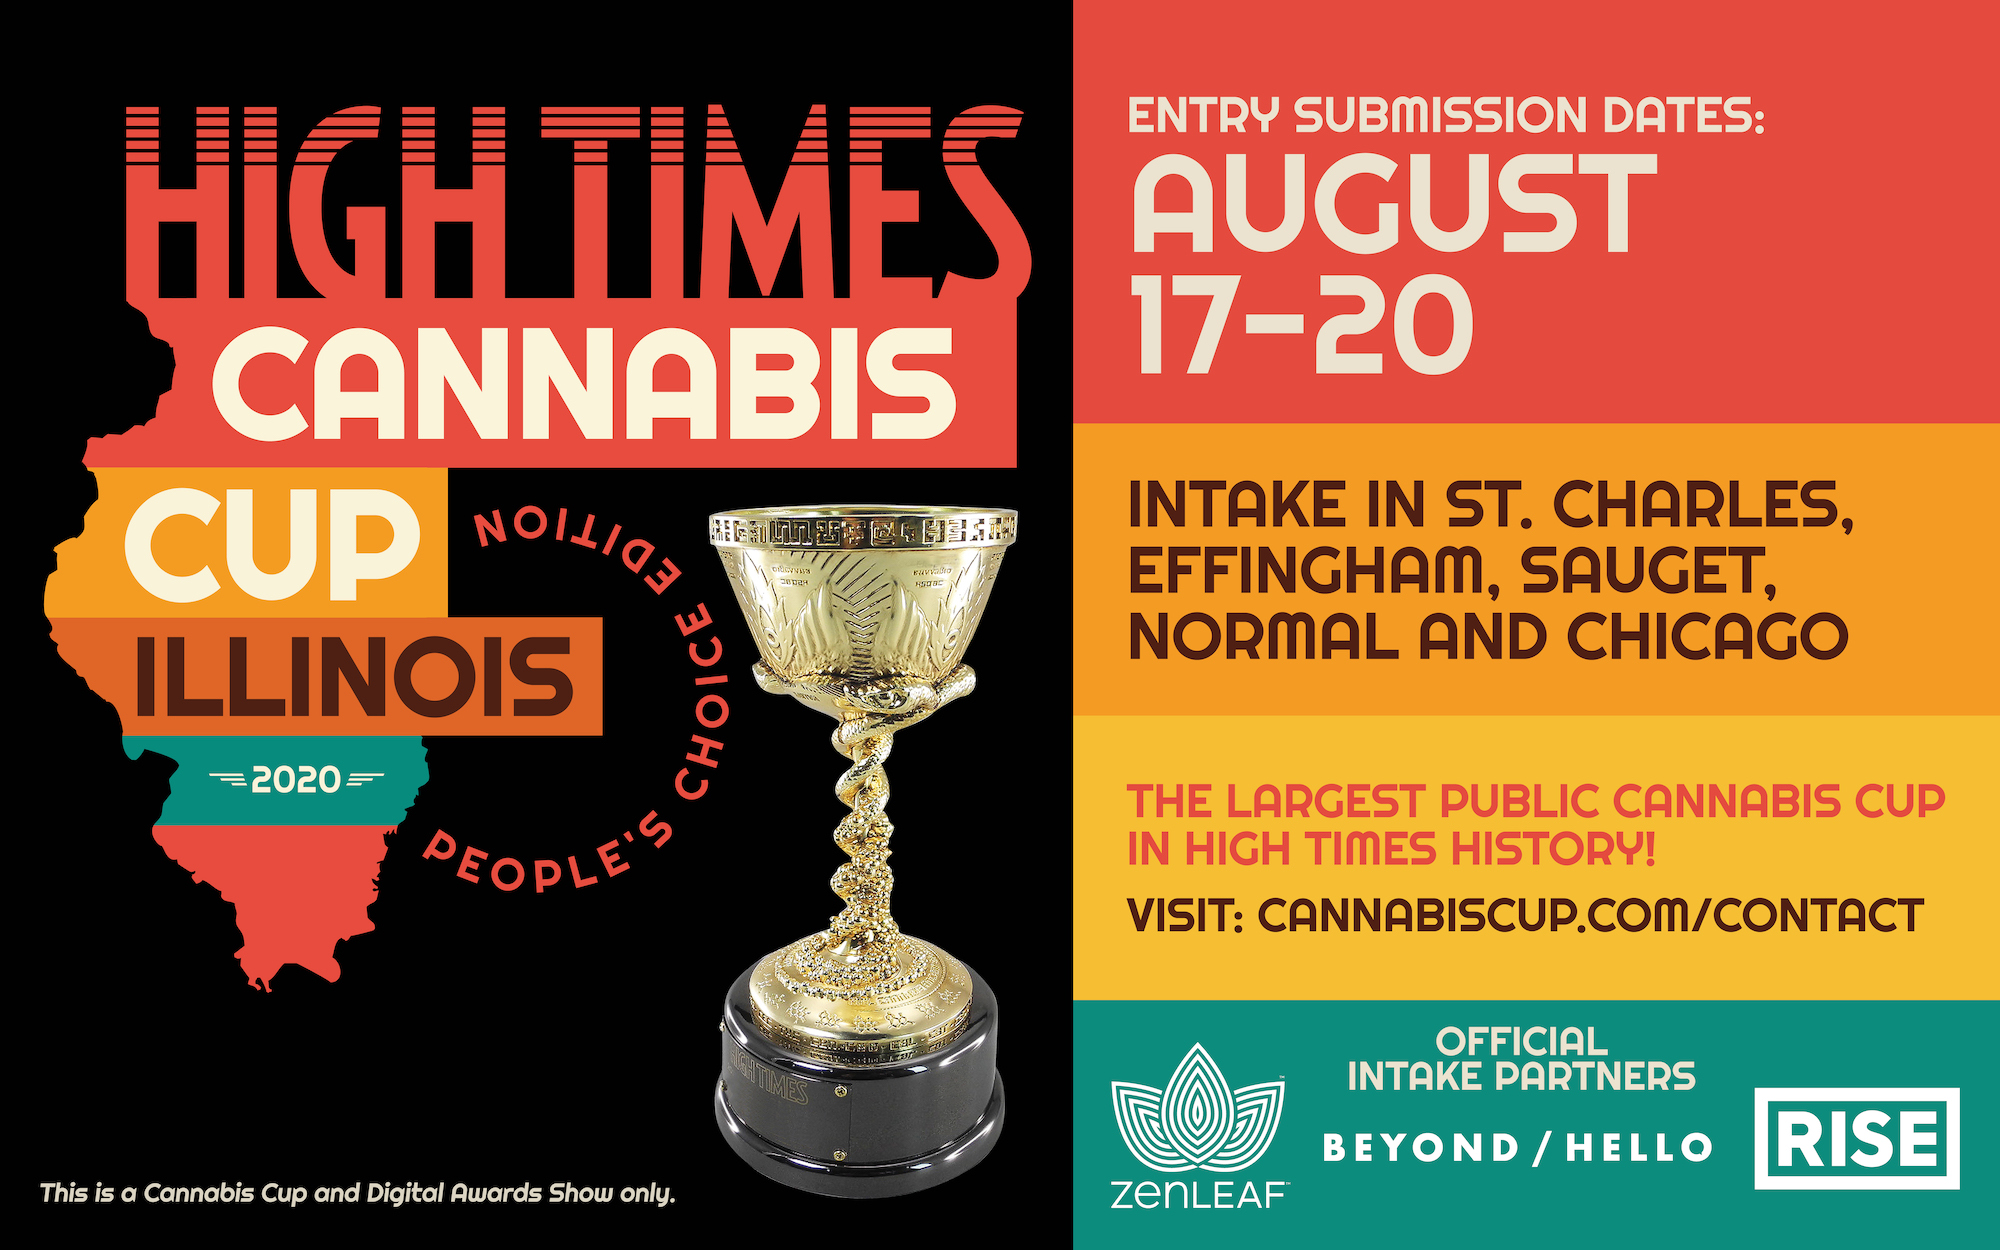 cannabis cup peoples choice edition coming illinois featured 1 - Cannabis Cup: People's Choice Edition Coming To Illinois